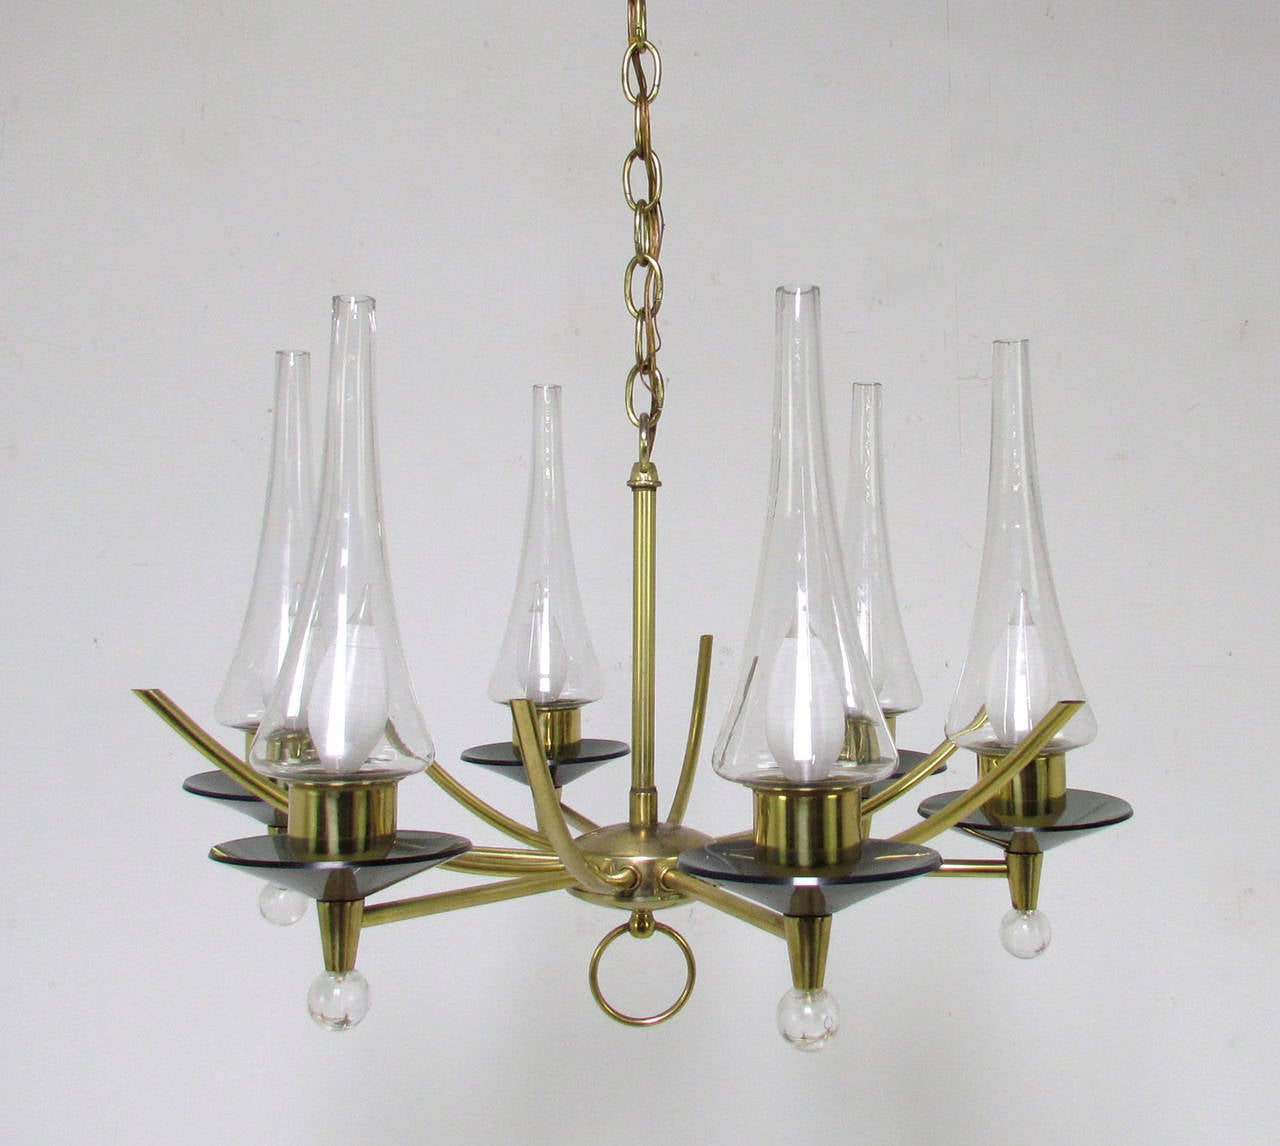 Mid-Century Modern six-arm chandelier in brass with smoked glass bobeches and elegantly tapered glass lantern shades by Feldman Co. of Los Angeles.